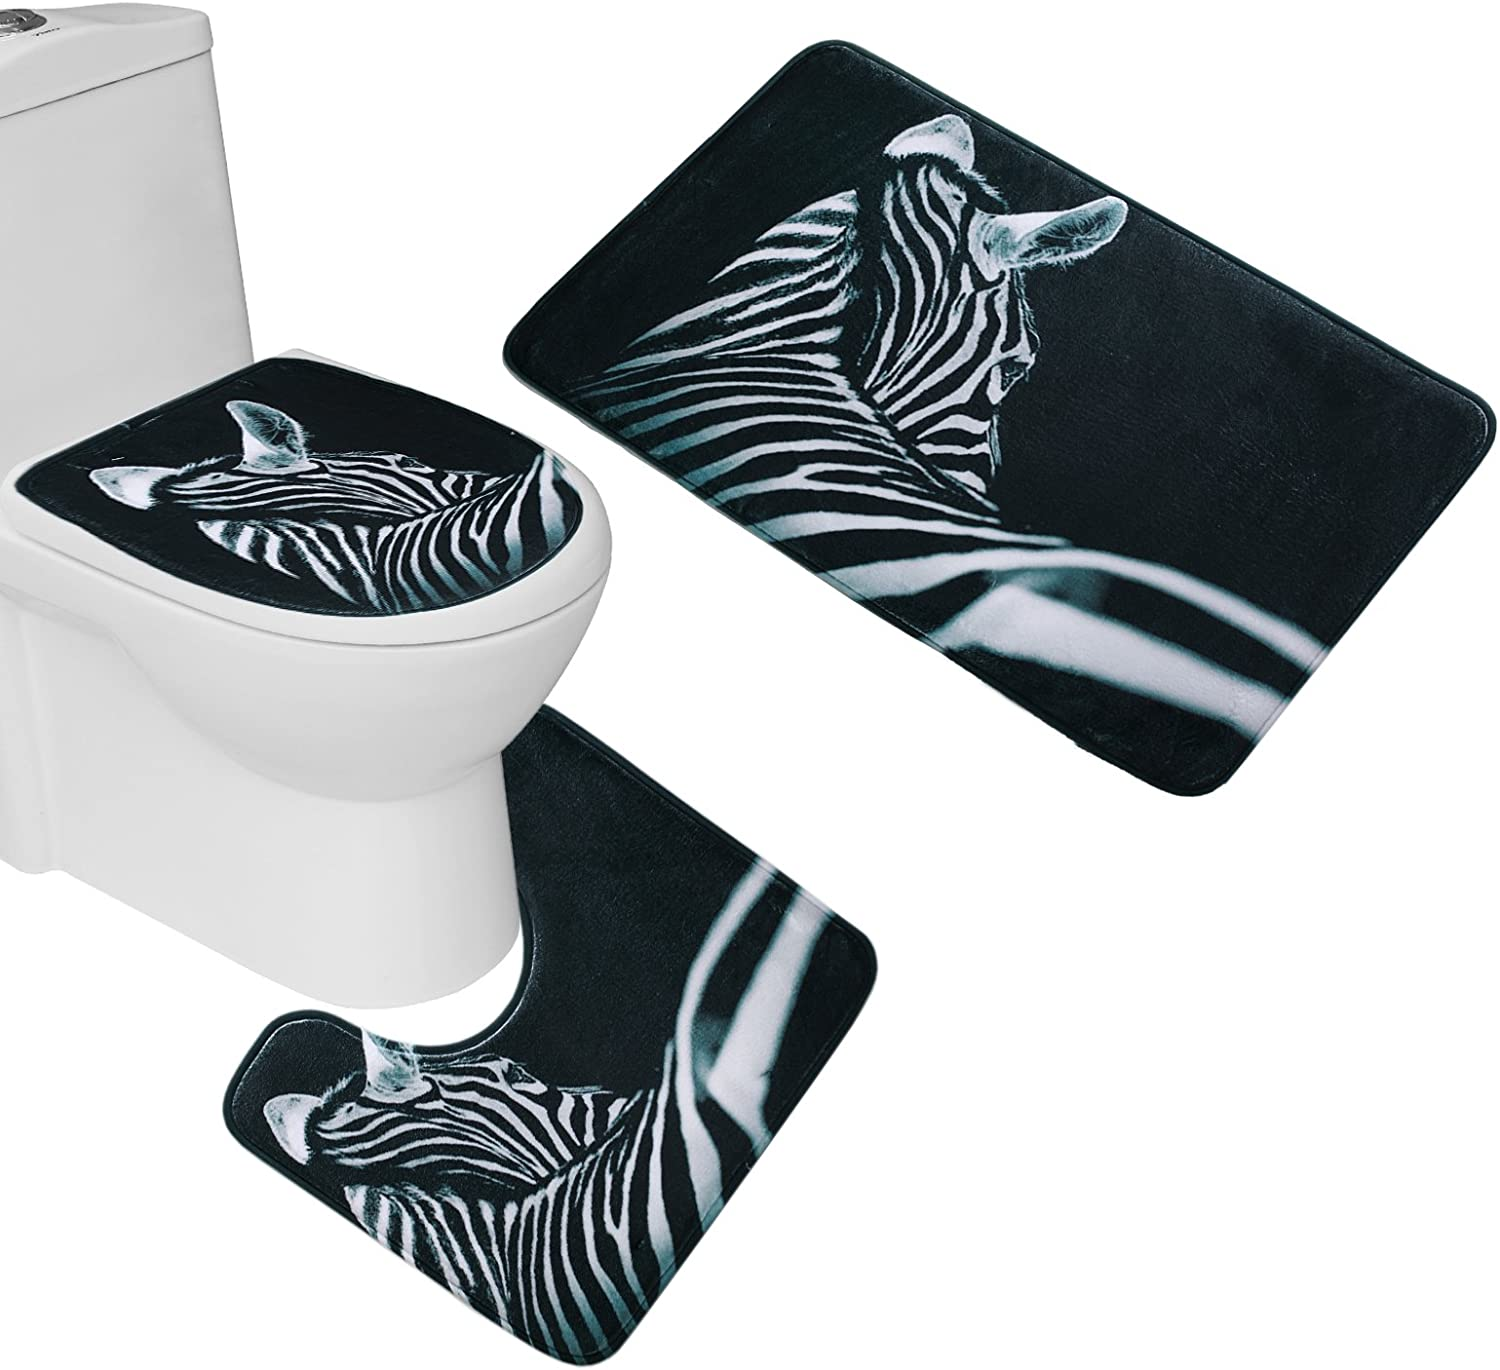 Amagical Soft 3 Piece Bath Purchase Toilet NEW before selling 16